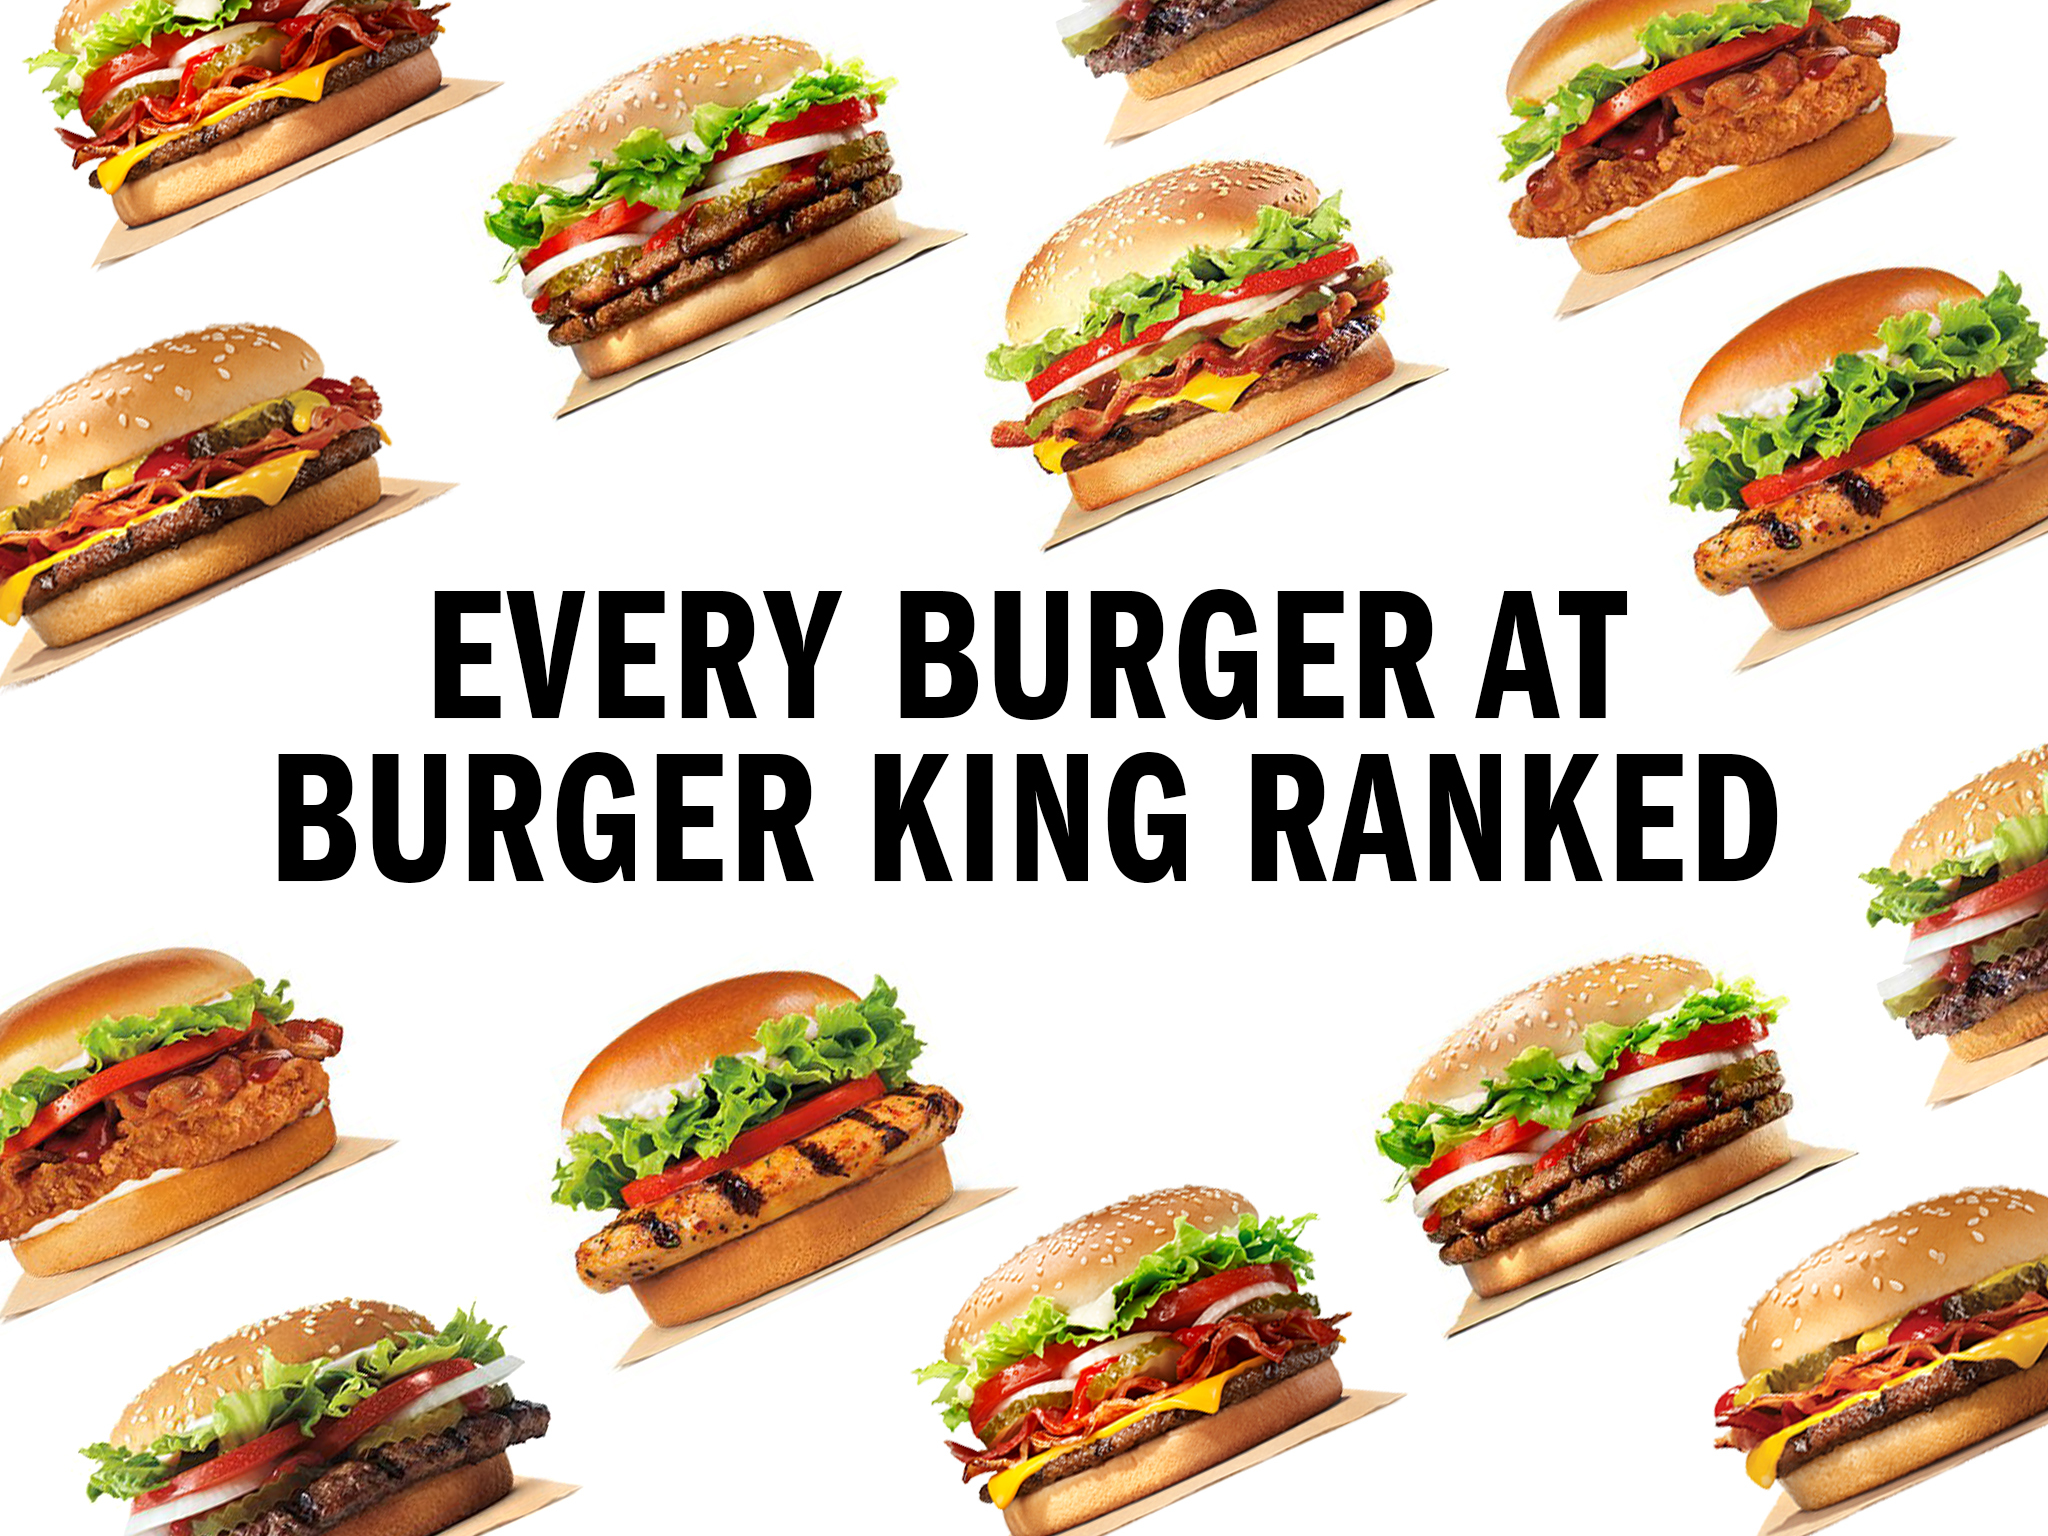 Every Burger King burger ranked from worst to best